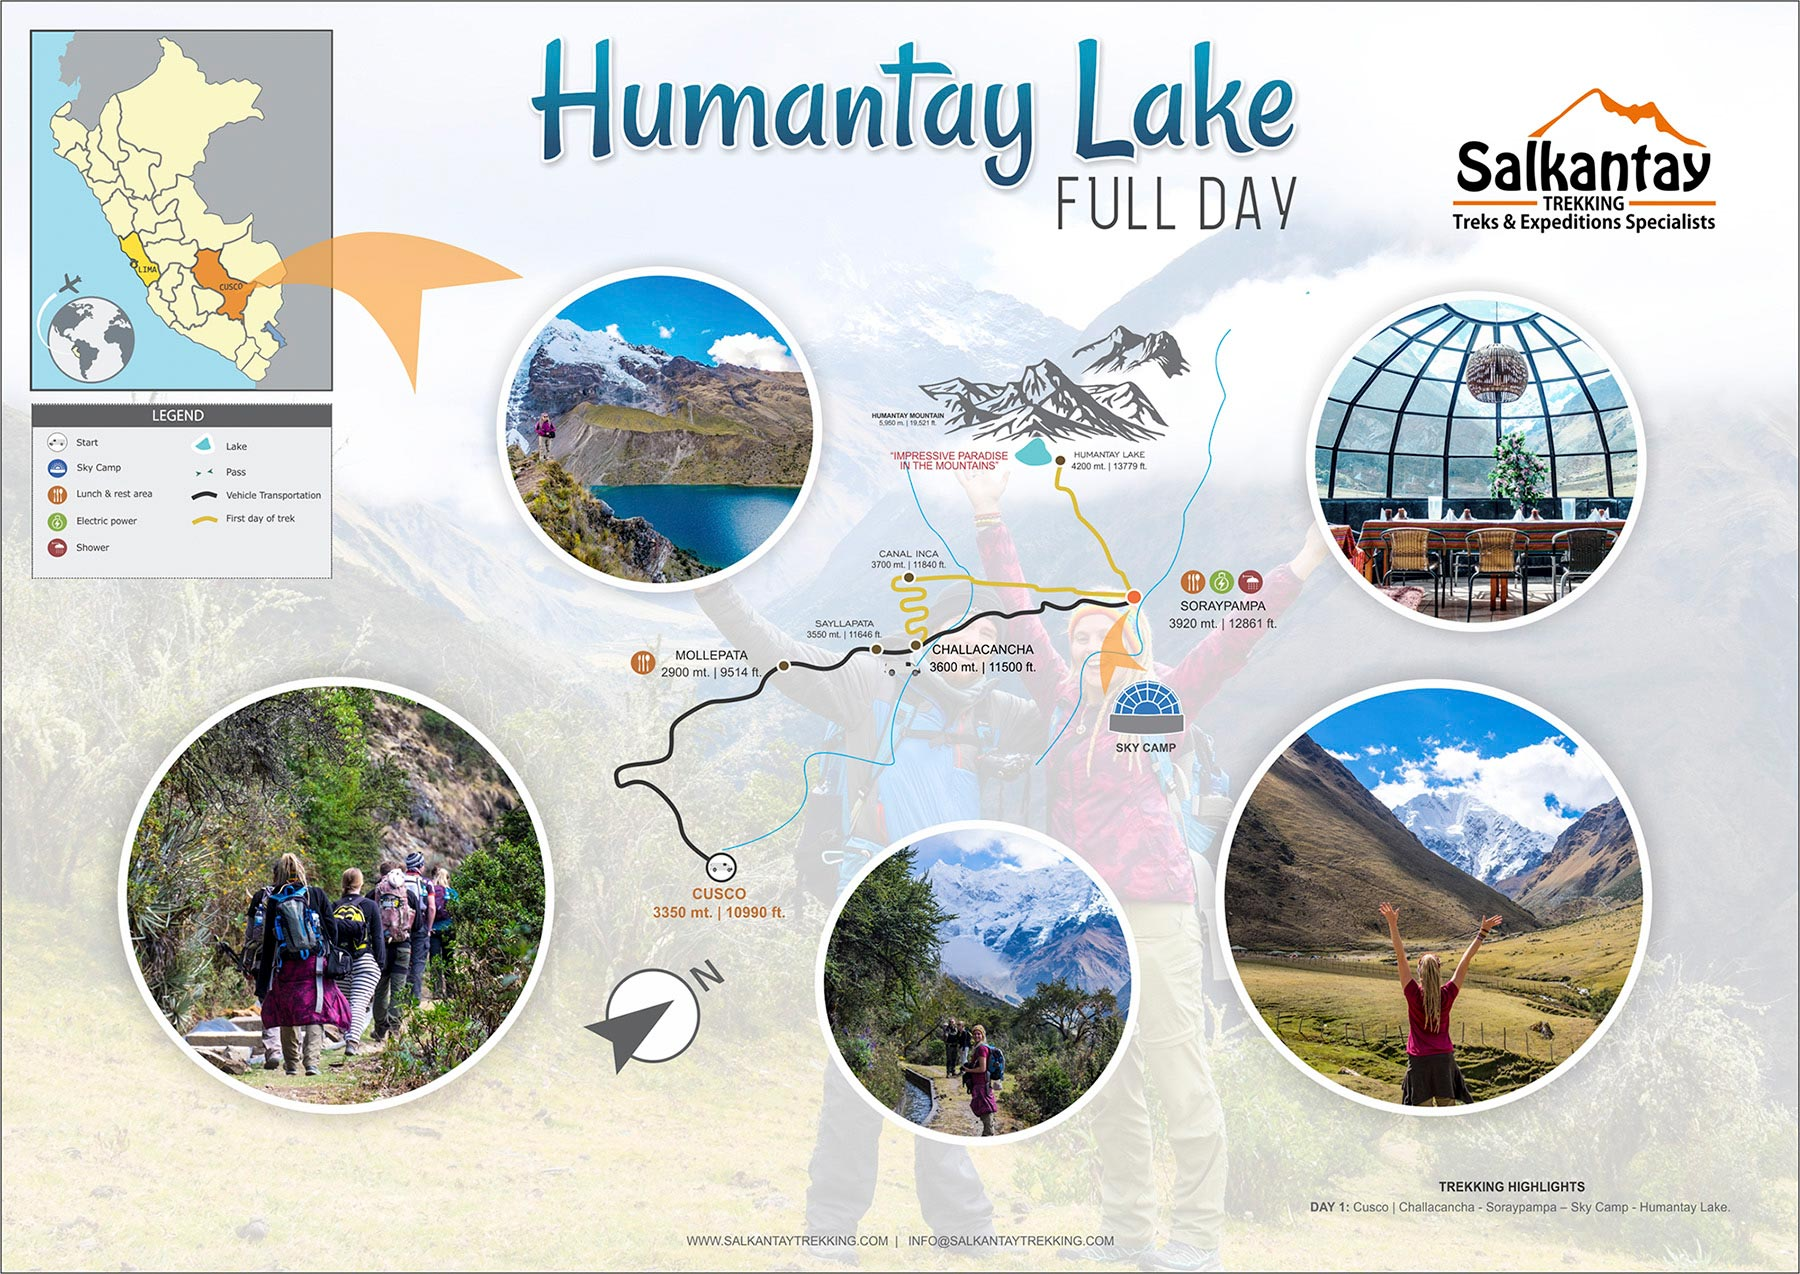 Humantay Lake Trek map and itinerary